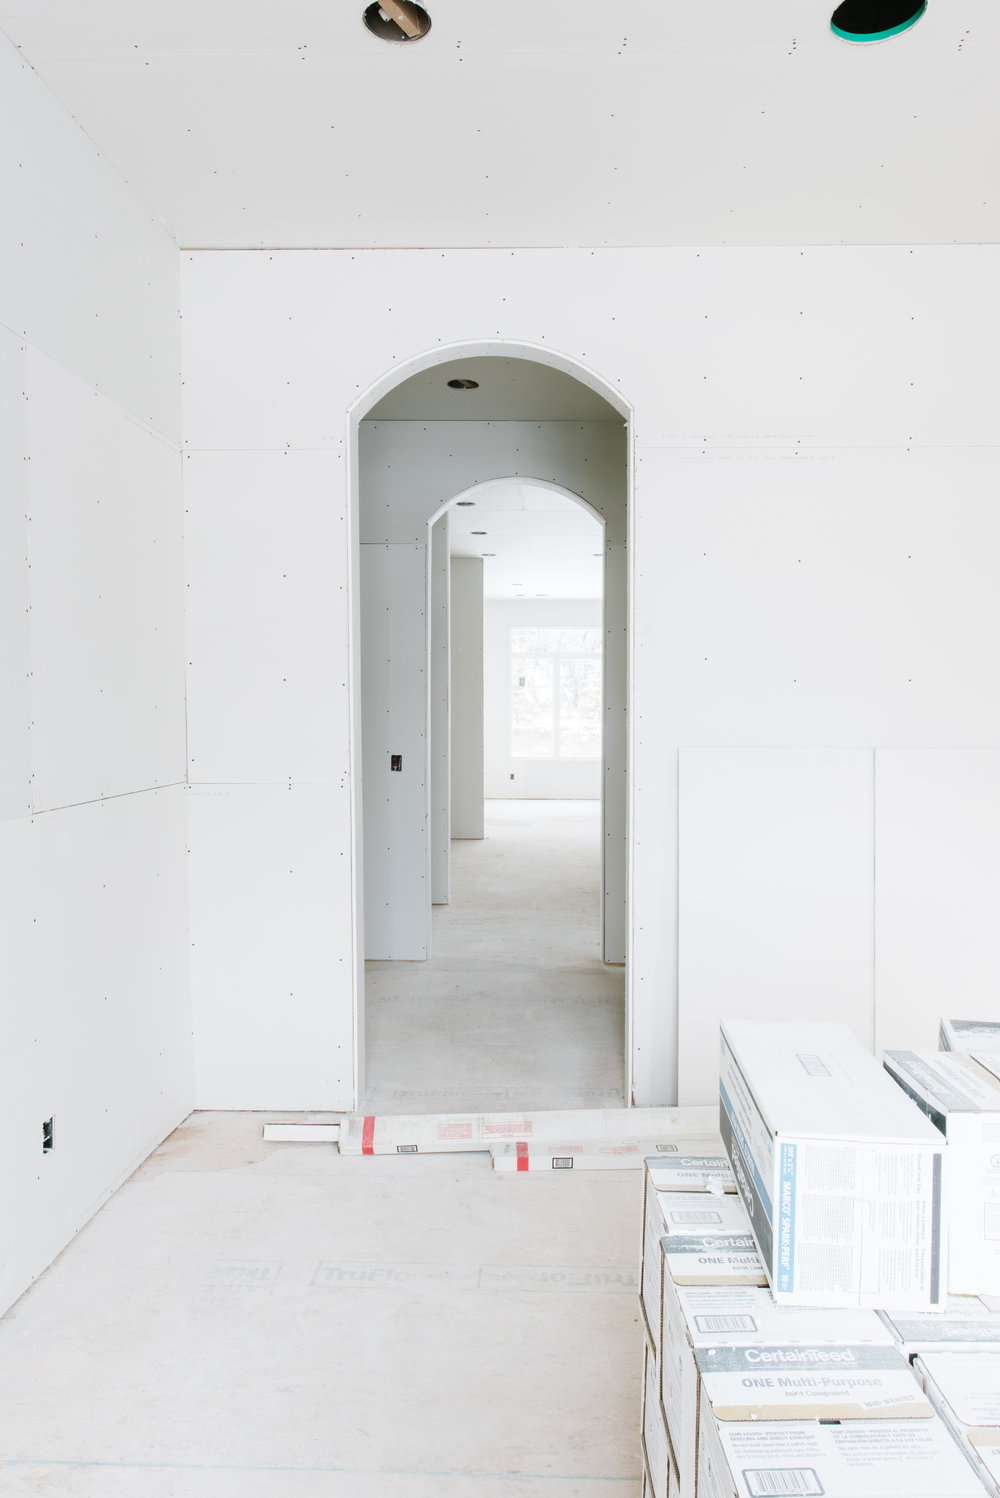 LOOKING INTO THE BUTLER'S PANTRY & KITCHEN FROM DINING ROOM